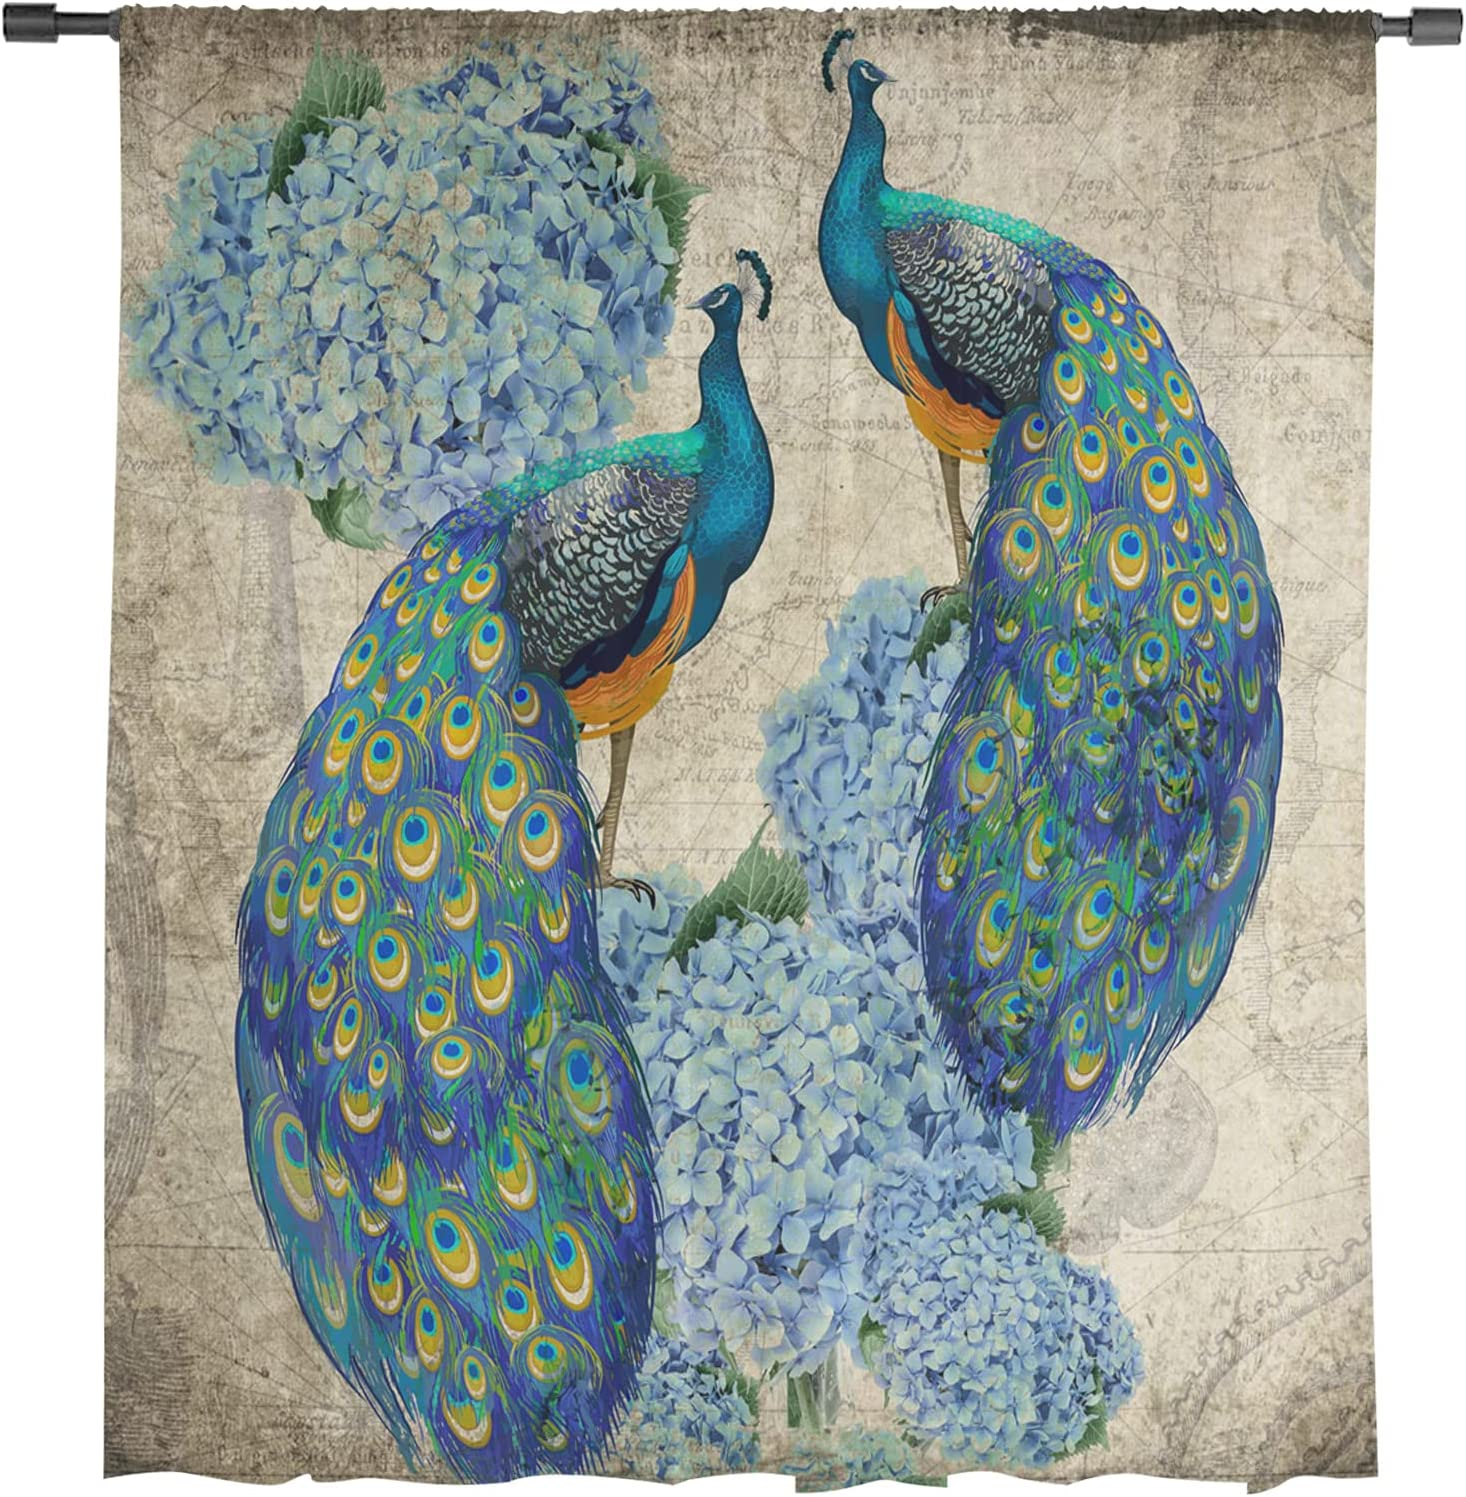 Peacock Voile Window Ranking TOP4 Curtains Lightweight Finally resale start Durable but Drapes Pa